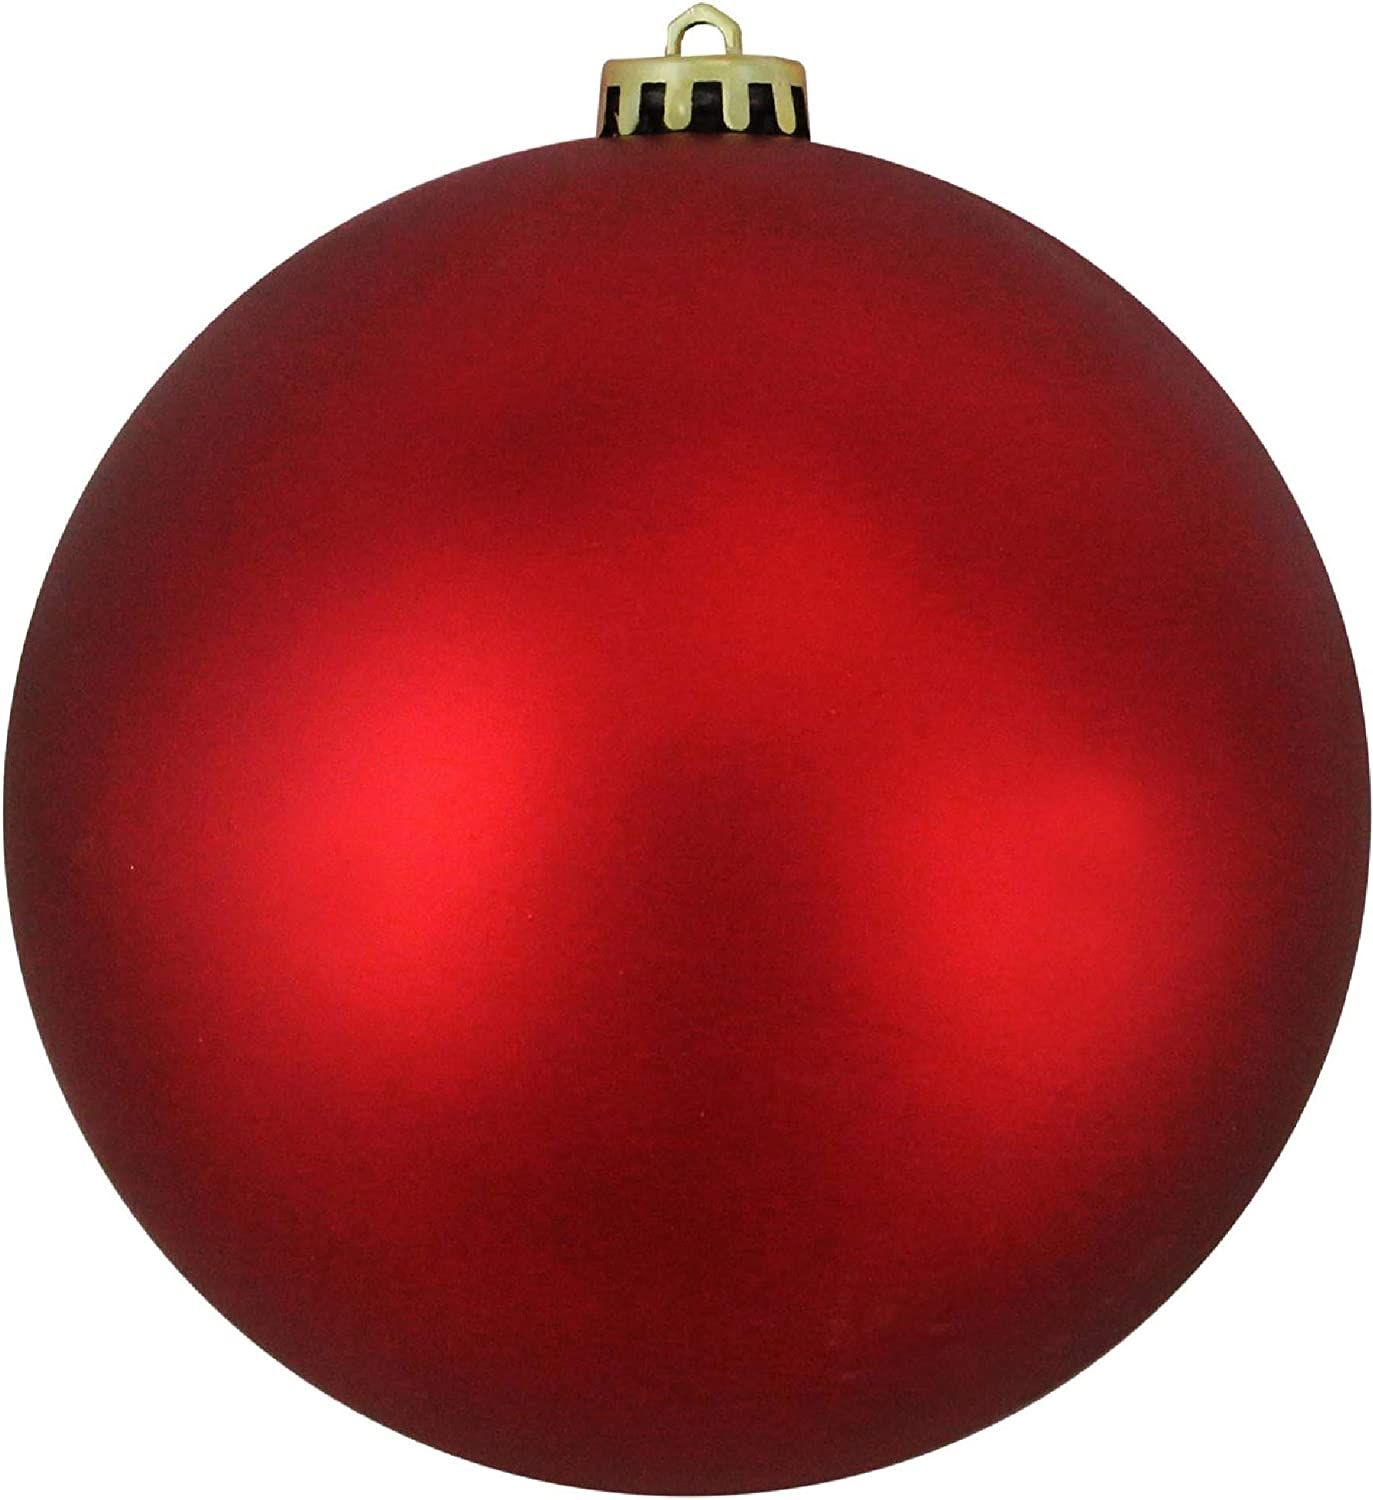 Amazon Com Northlight Red Hot Shatterproof Matte Commercial Christmas Ball Ornament 8 200mm Home Kitchen